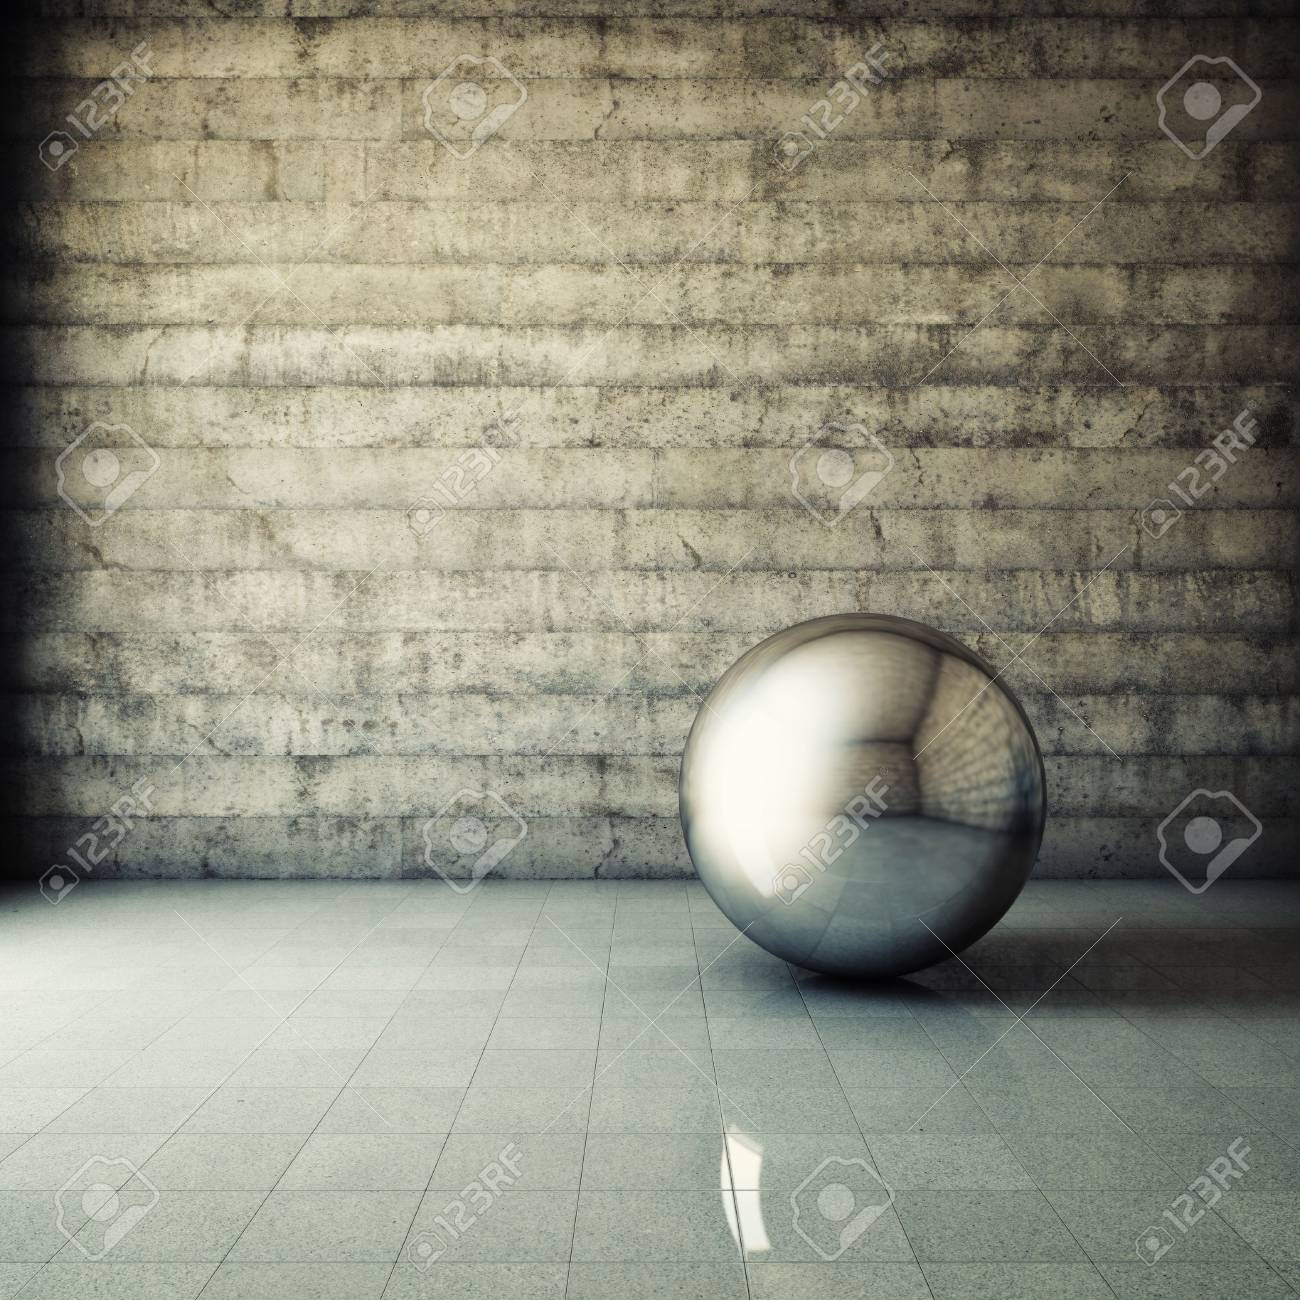 Abstract grunge interior with metallic ball Stock Photo - 16430802